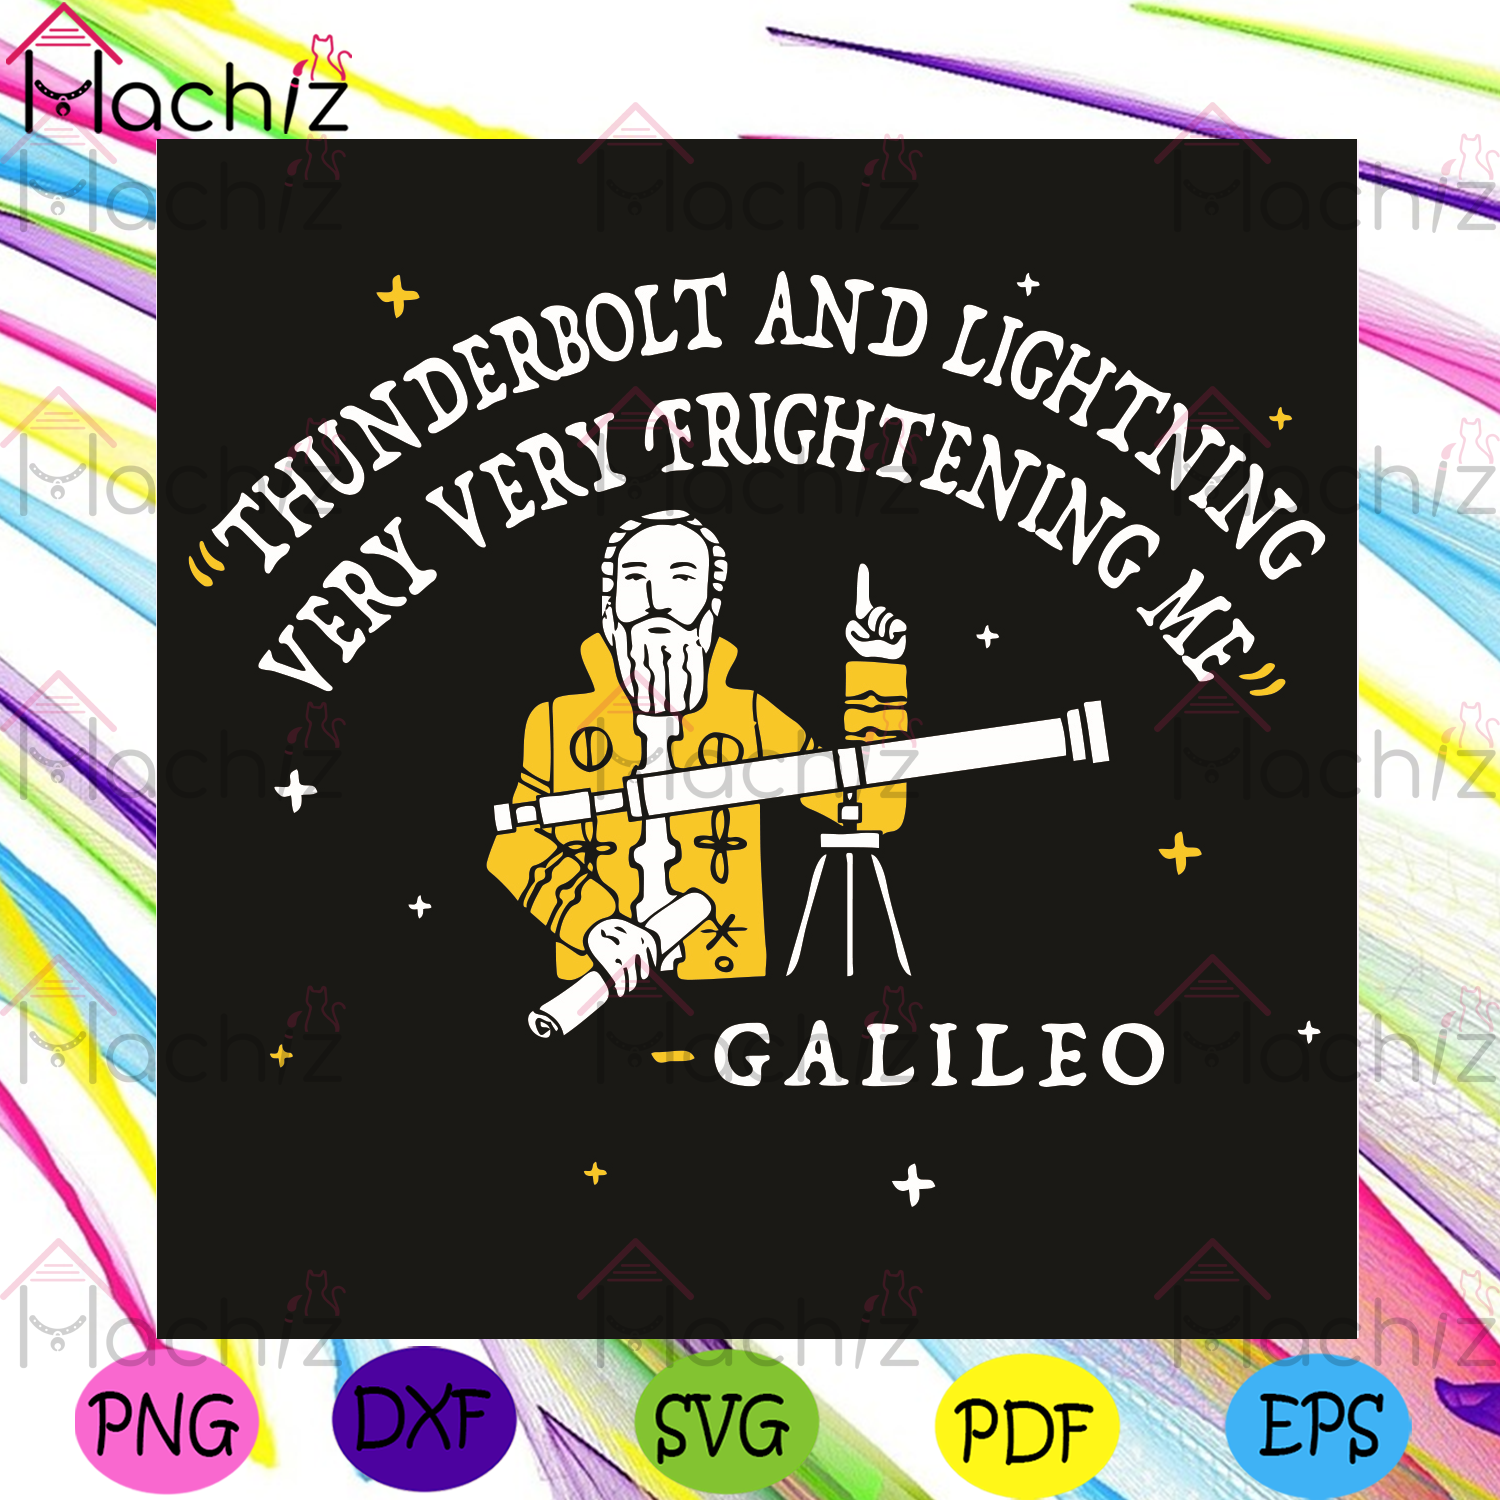 Thunderbolt And Lightning Very Very Frightening Me Galileo Svg, Trending Svg, Galileo Svg, Galileo Scientist Svg, Thunderbolt Svg, Lightning Svg, Crash Of Thunder Svg, Galileo Lovers Svg, Thunderbolt Lovers Svg, Science Svg